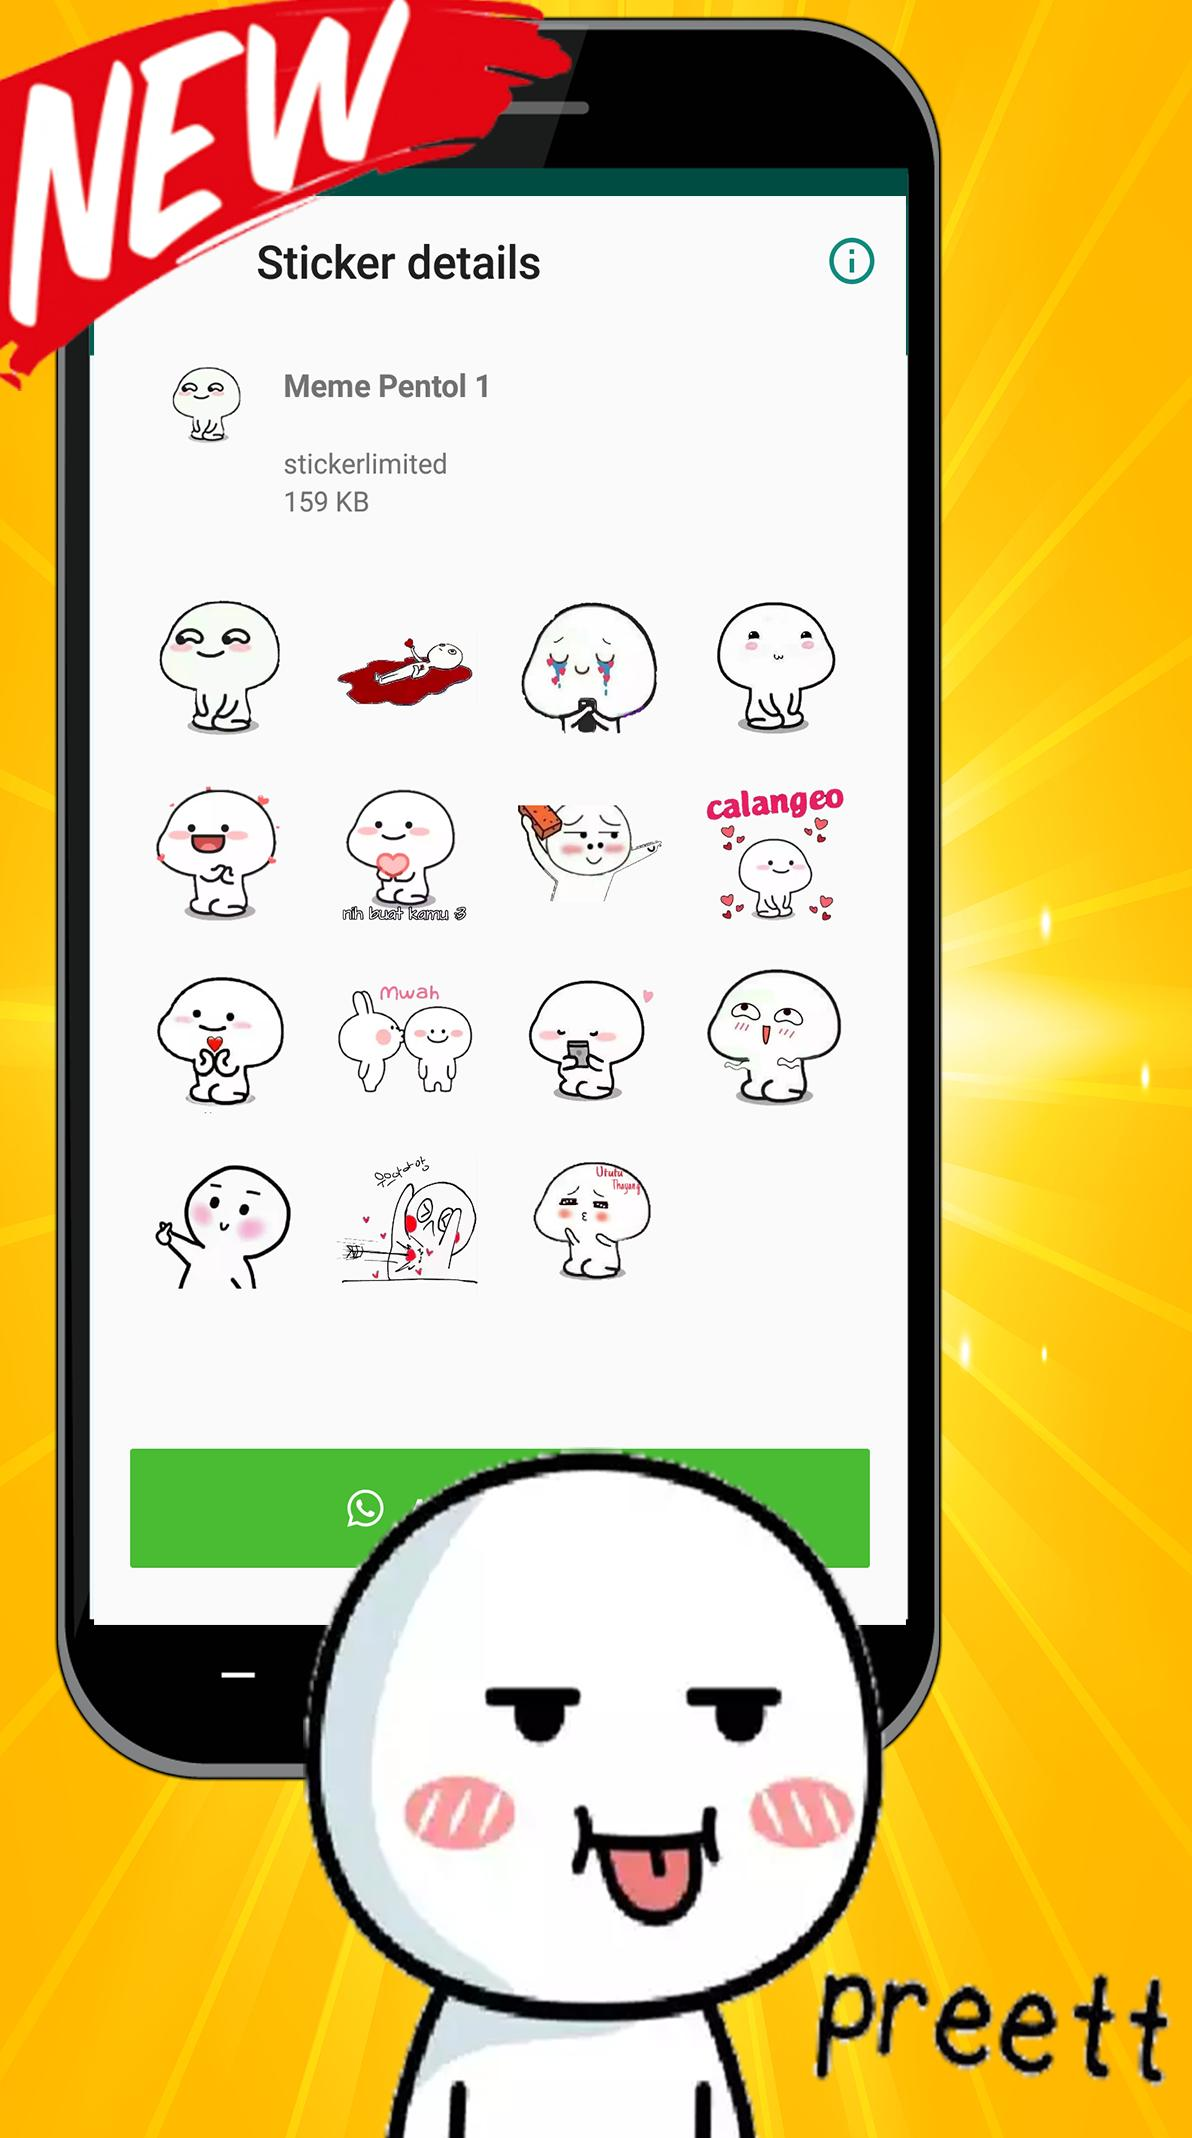 Meme Sticker Pentol Lucu For Wastickerapps For Android Apk Download